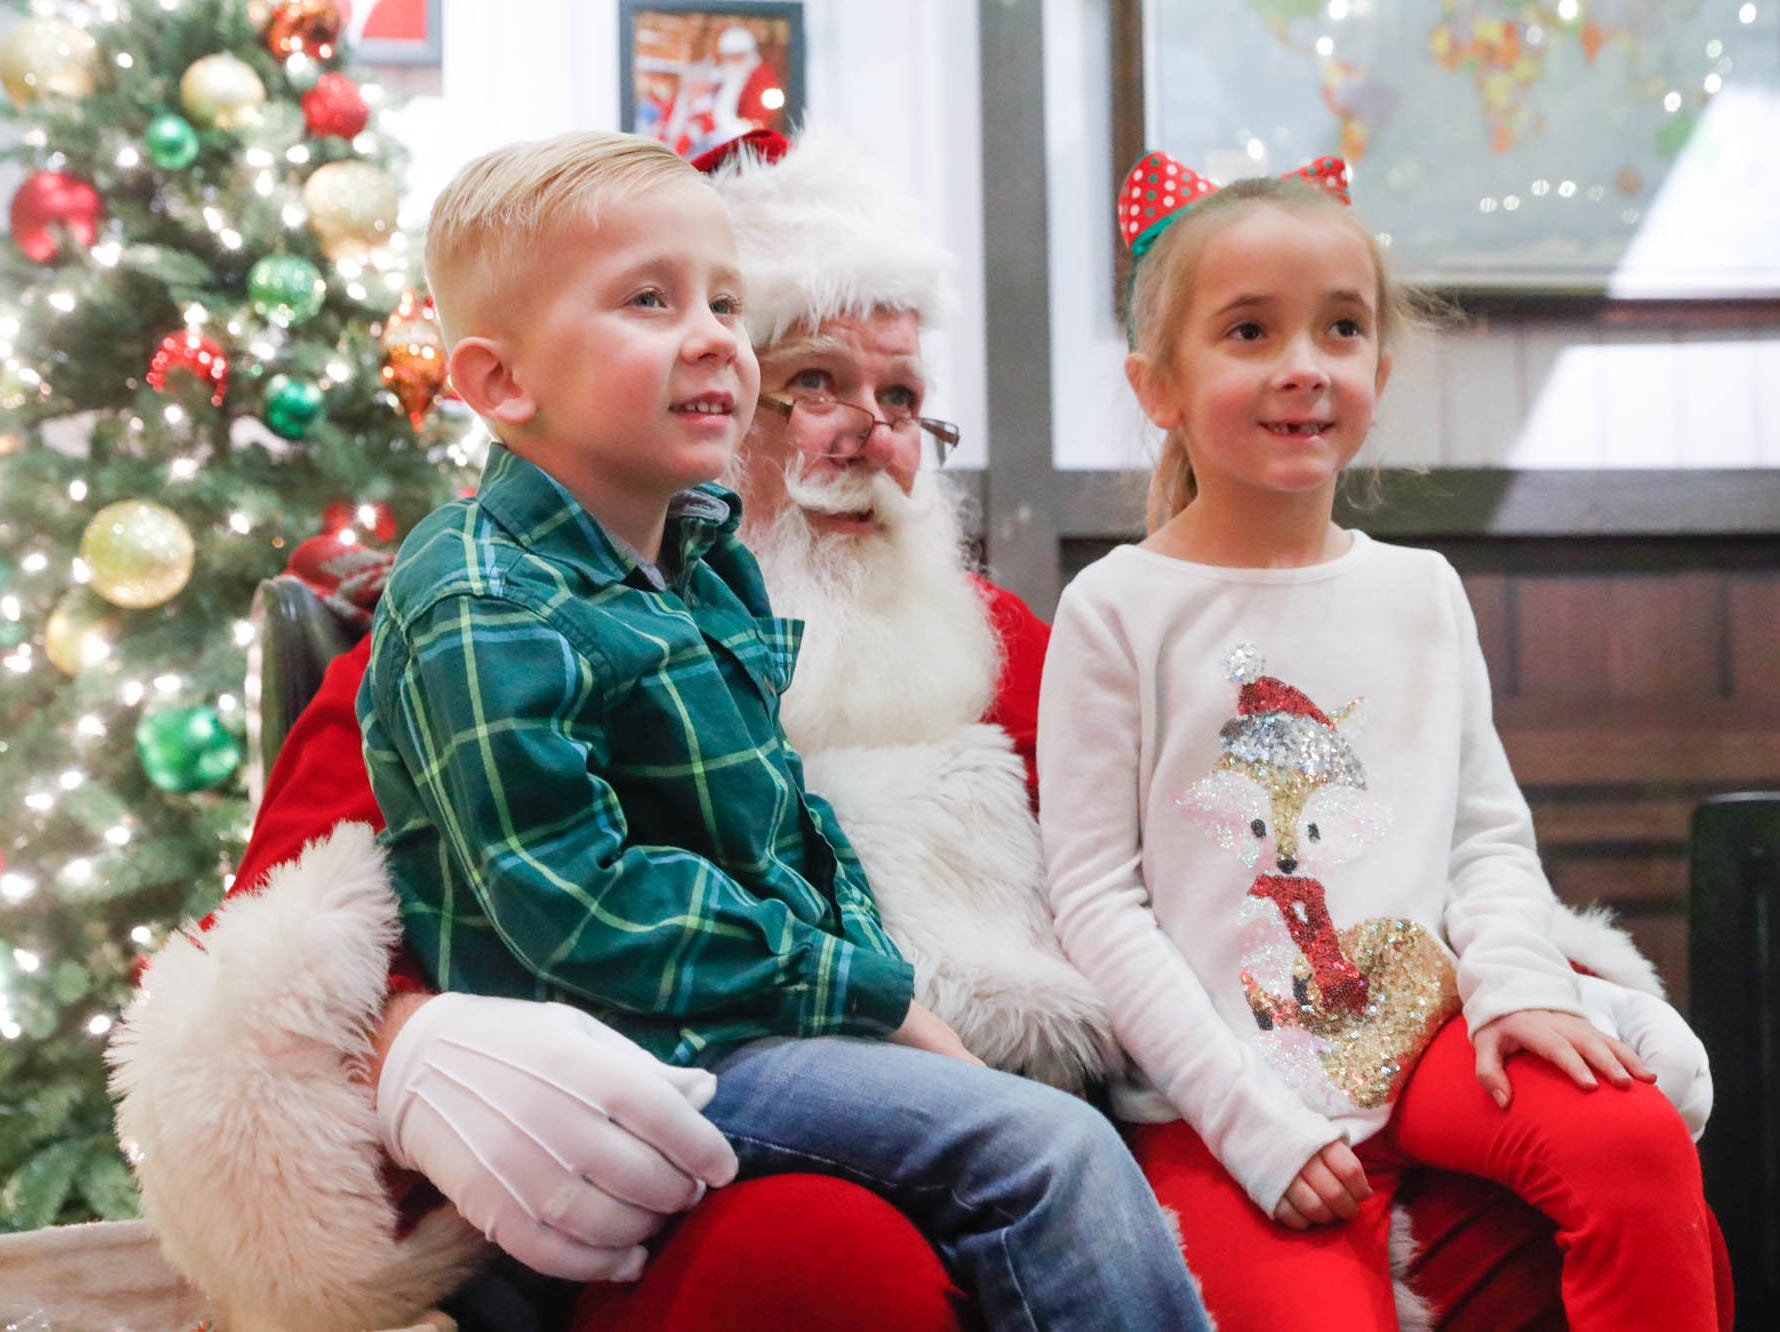 Steven and Genevieve Crawley sit on Santa's lap during Christmas at the Indianapolis Zoo on Wednesday, Dec. 19, 2018.